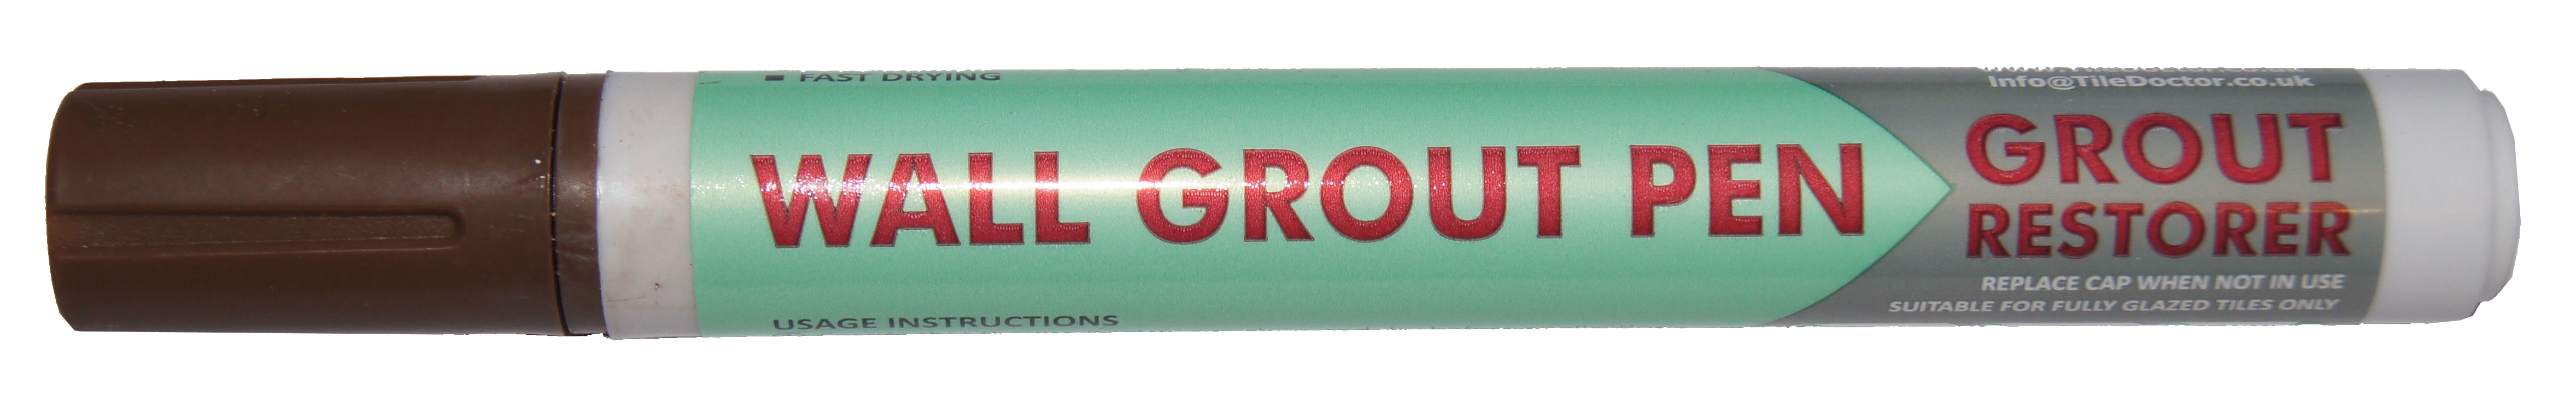 Click here for more information about Grout Pens